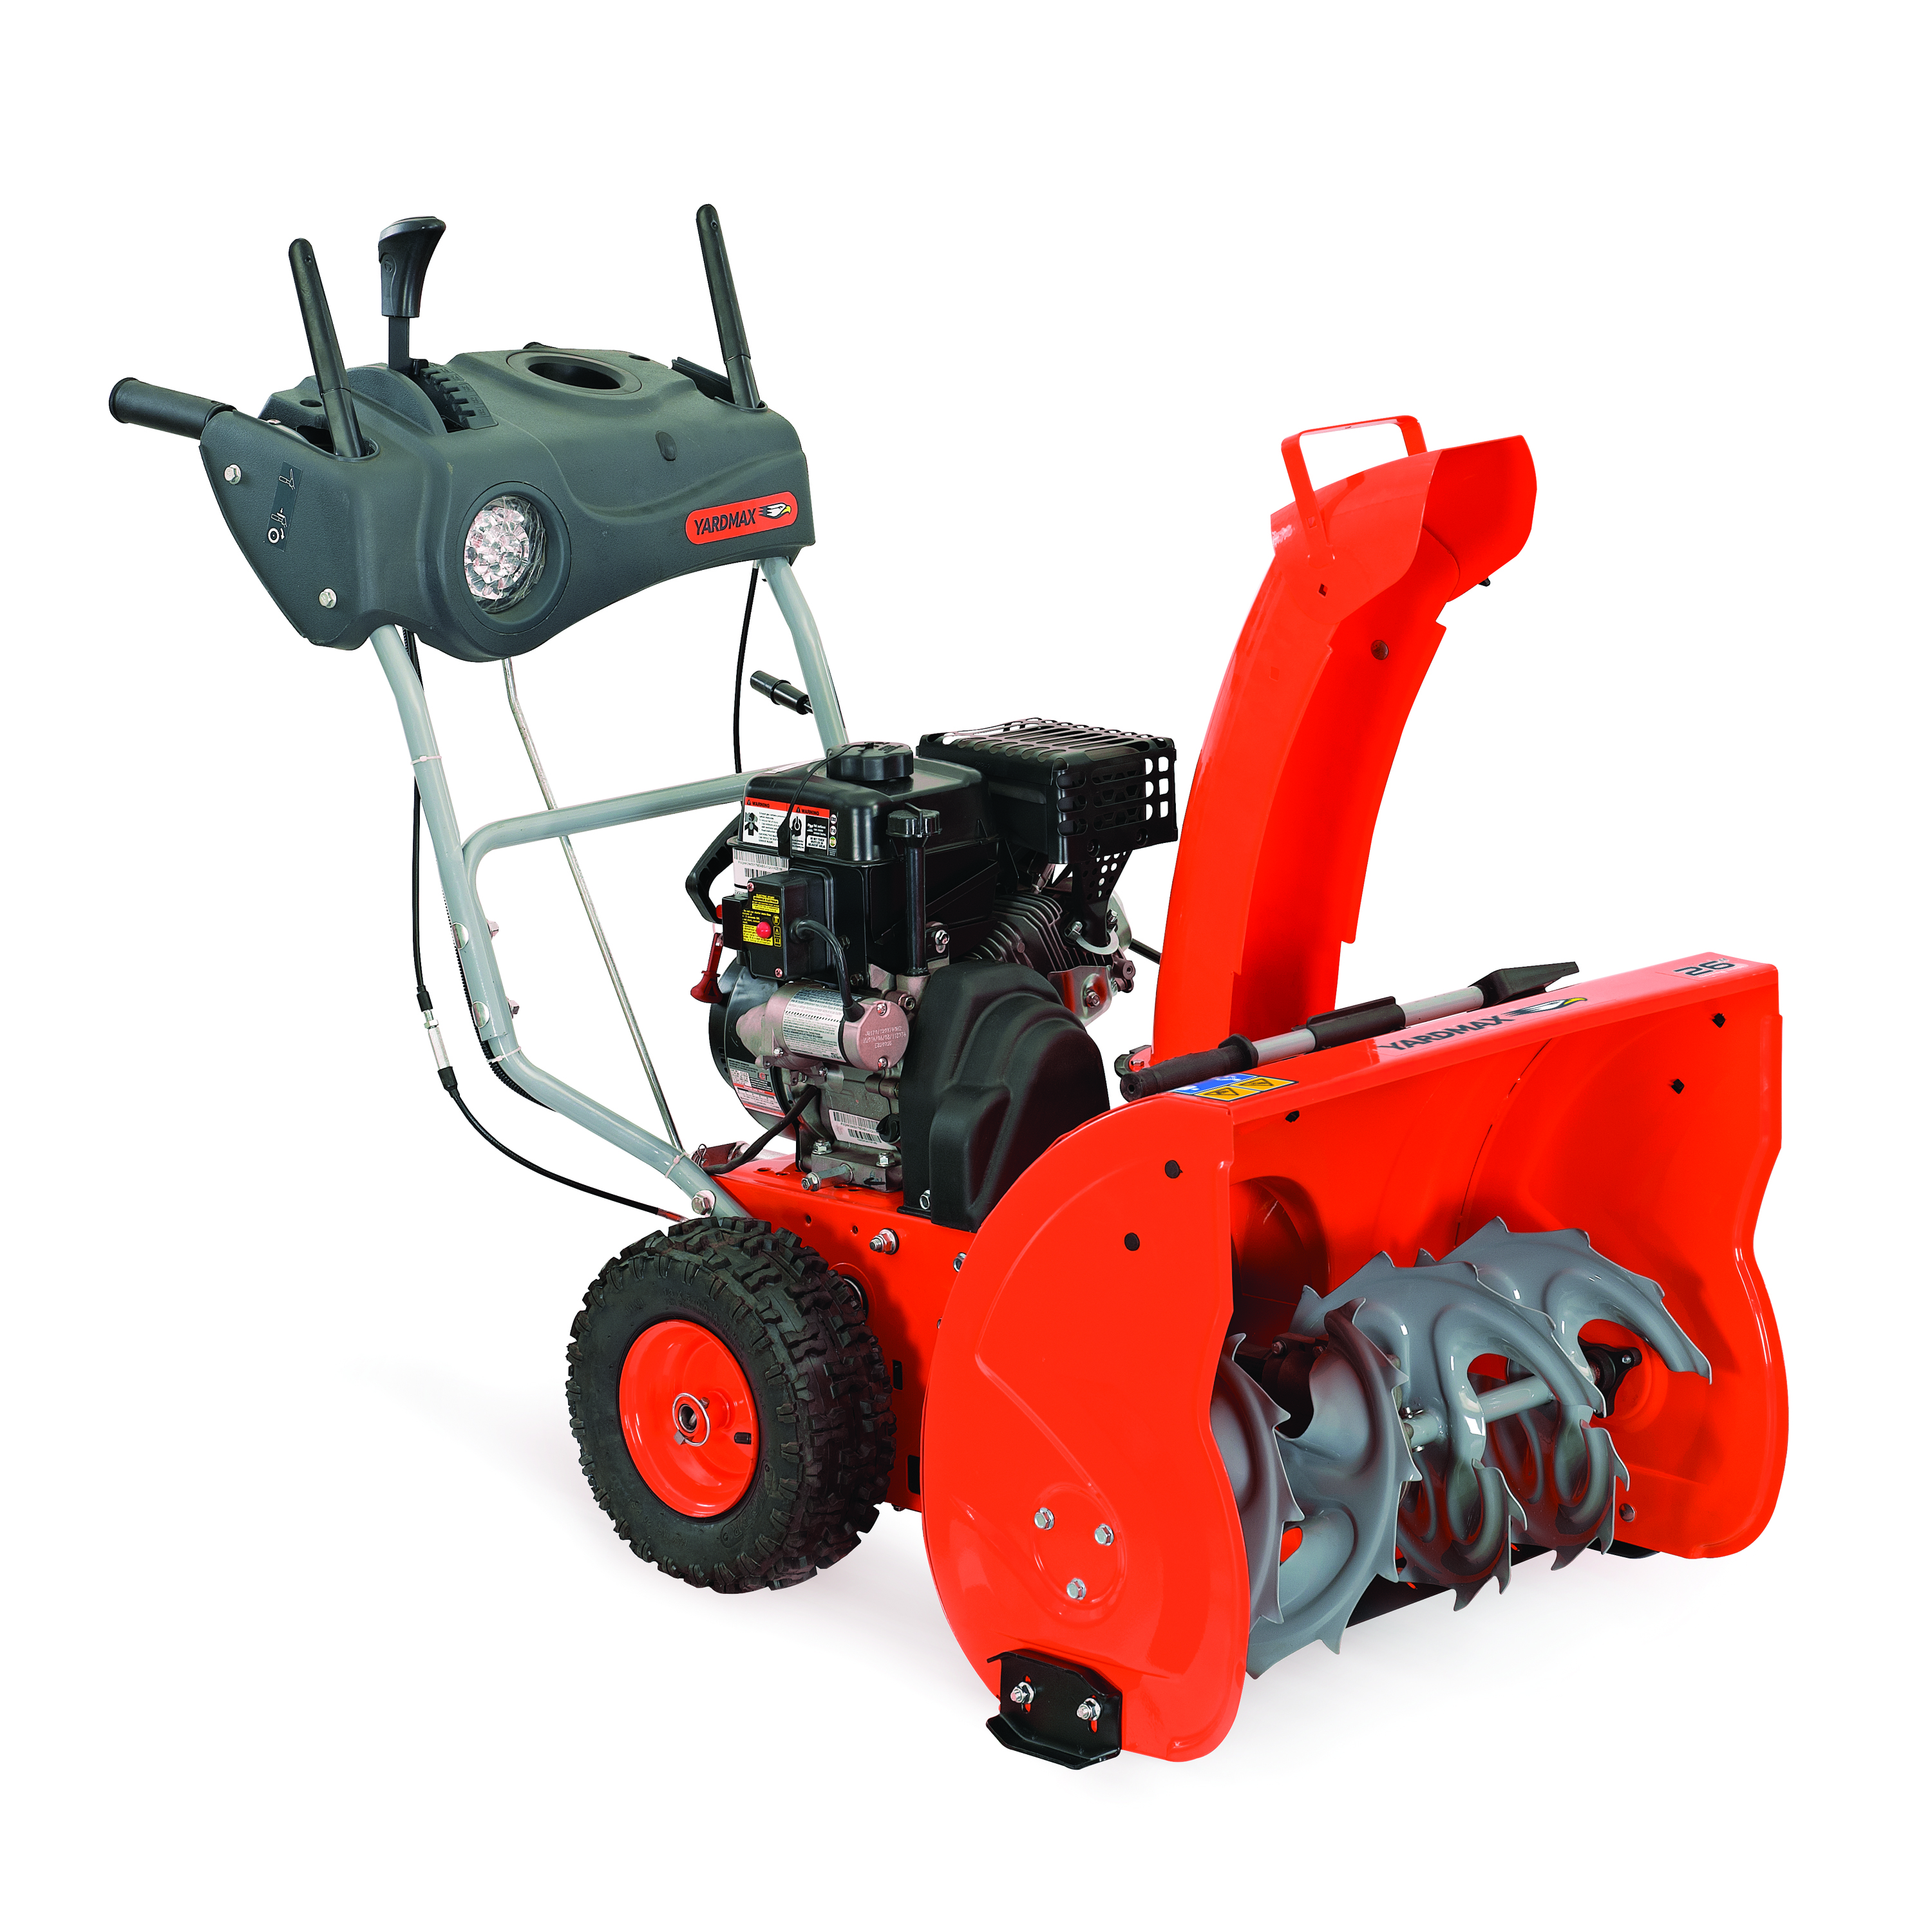 26-inch-two-stage-snow-blower-with-dashboard